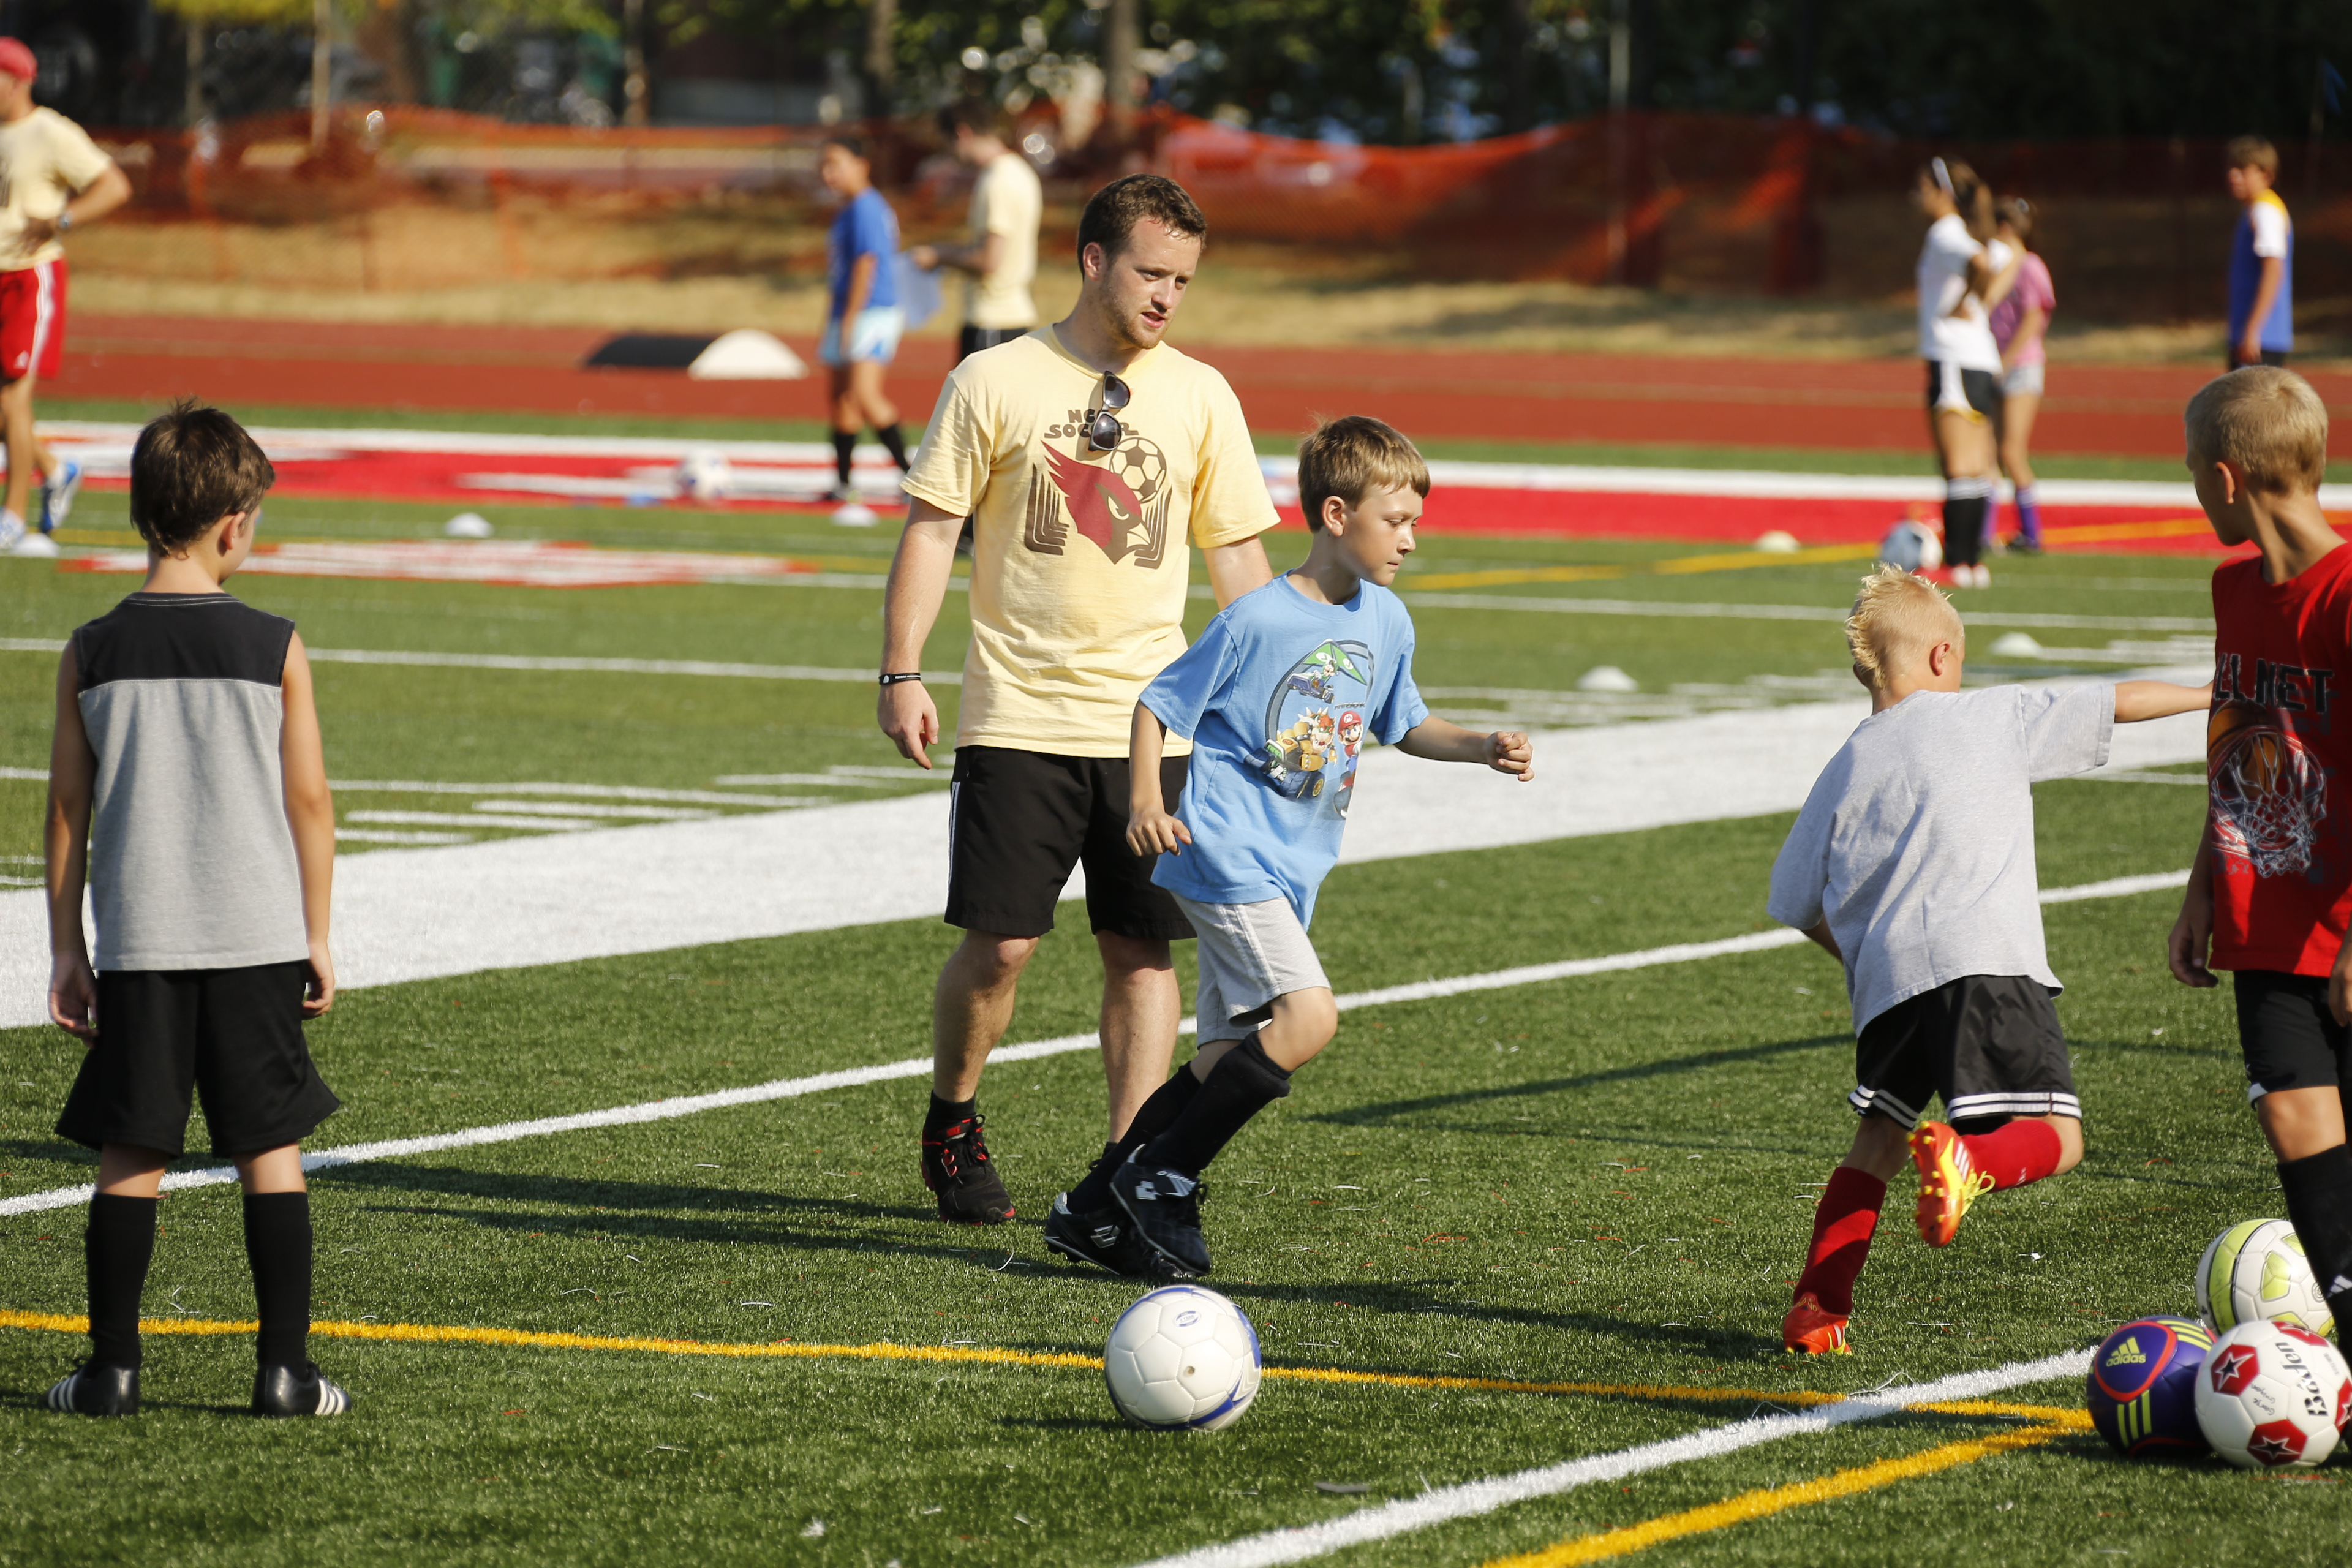 Summer Program - Soccer | North Central College: Summer Athletic Camps